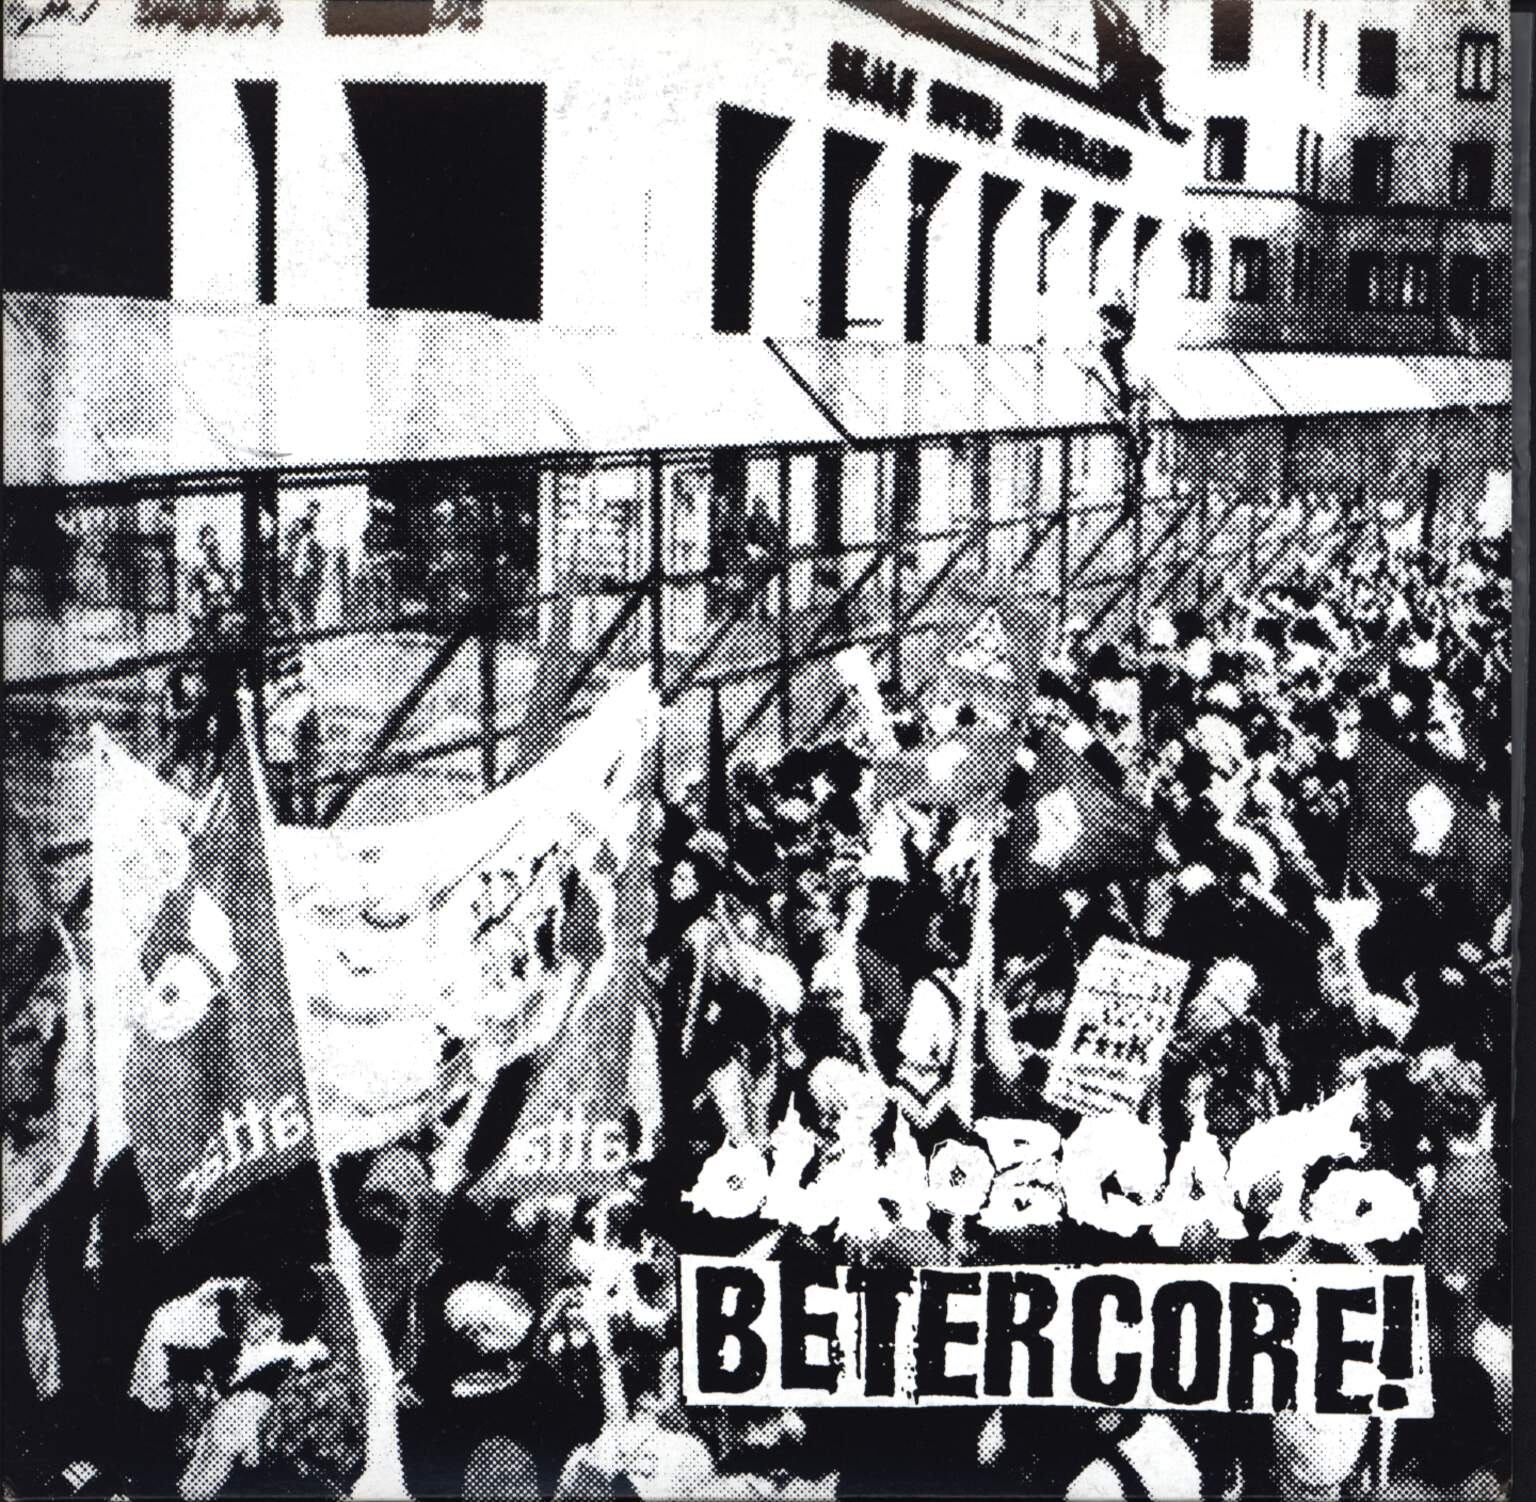 "Betercore!: Fuck The Borders!, 7"" Single (Vinyl)"